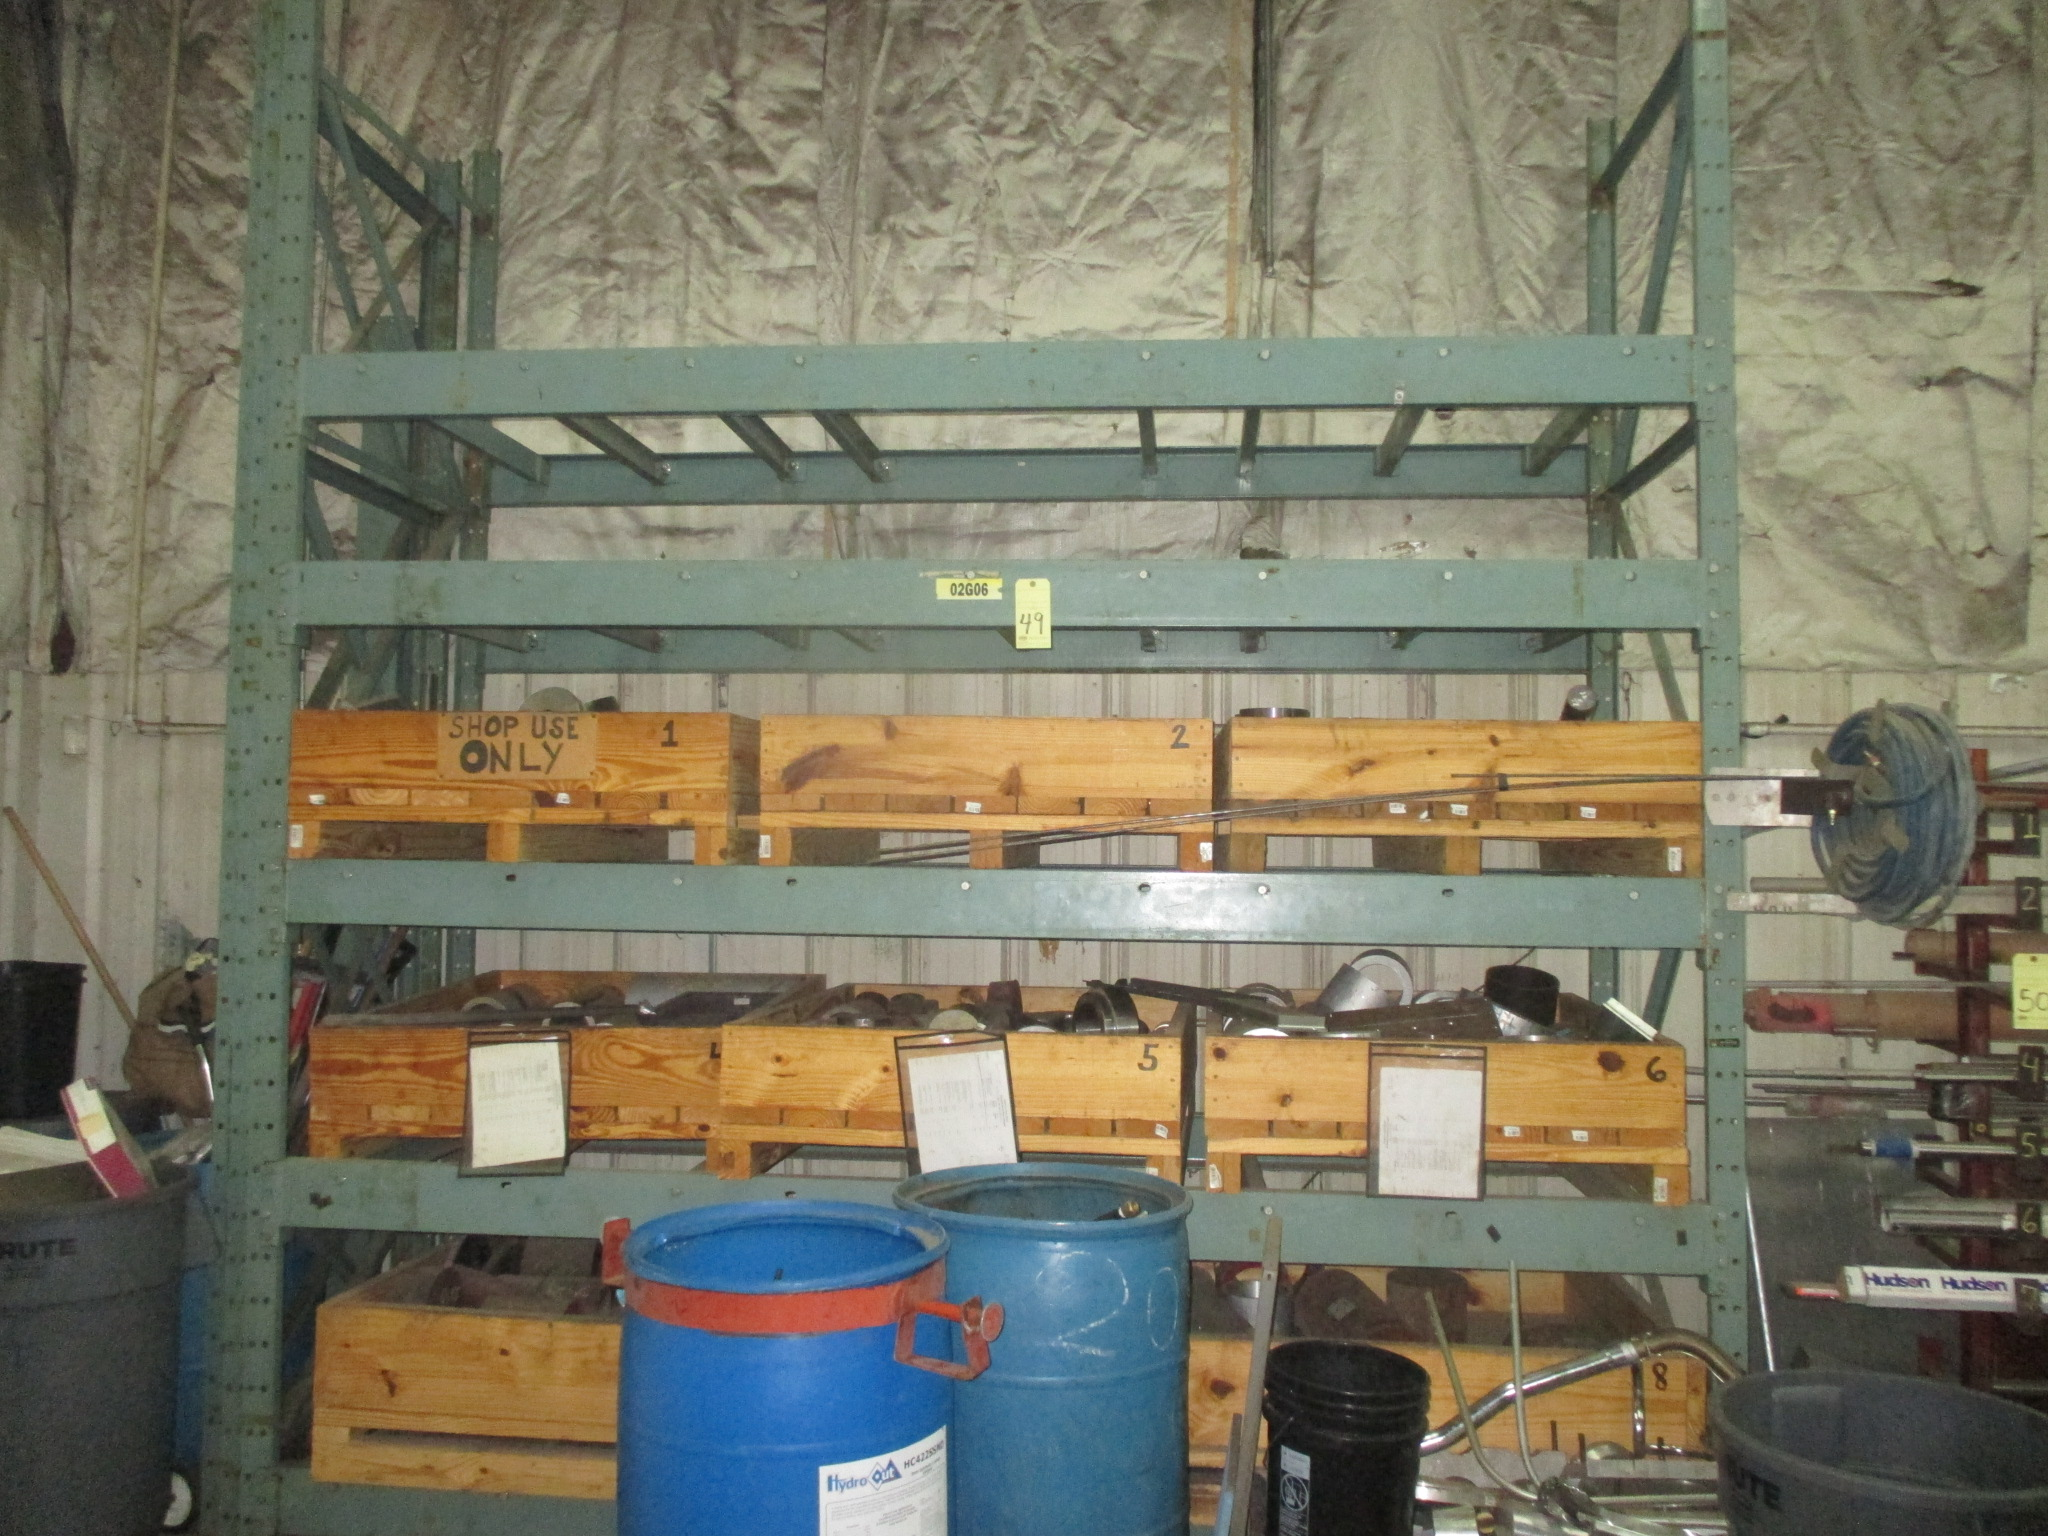 Lot 49 - PALLET RACK SECTION, 15' x 10' x 3-1/2 dp.(delayed removal until 08/24/17)